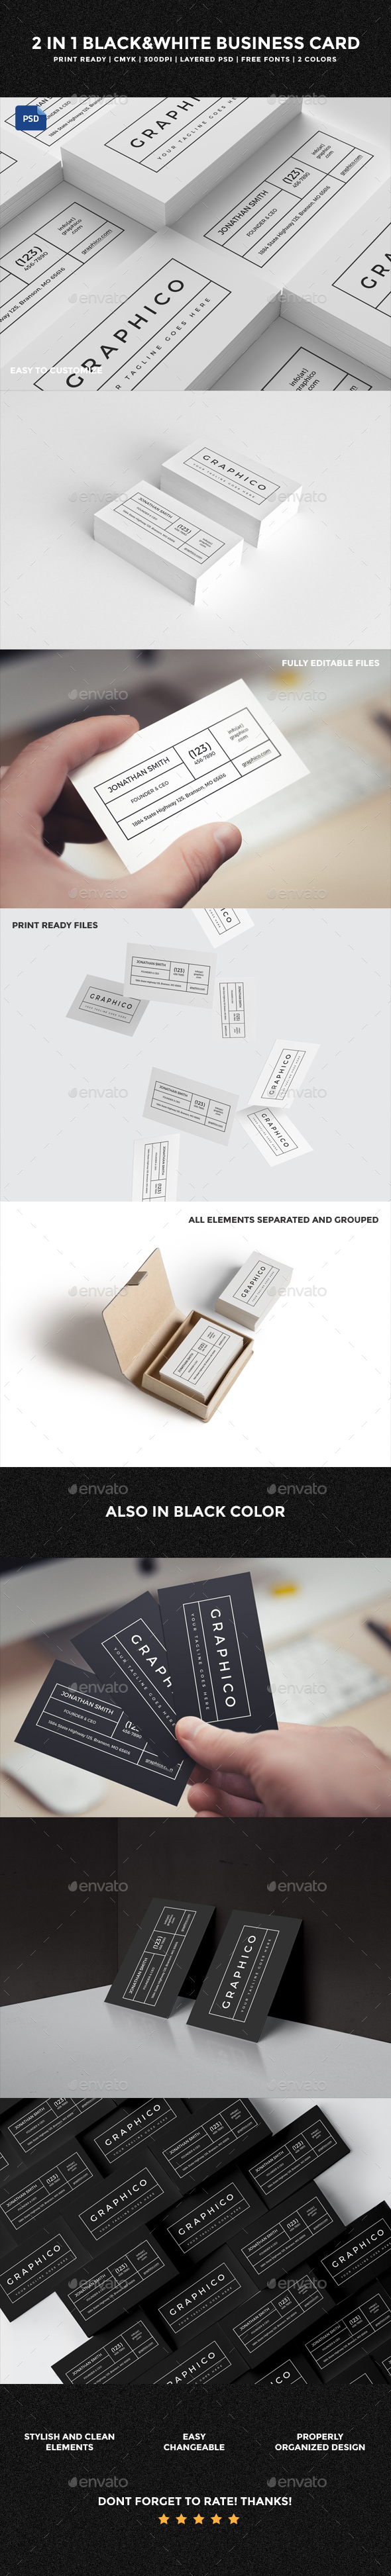 2 in 1 Black & White Business Card - 60 - Creative Business Cards